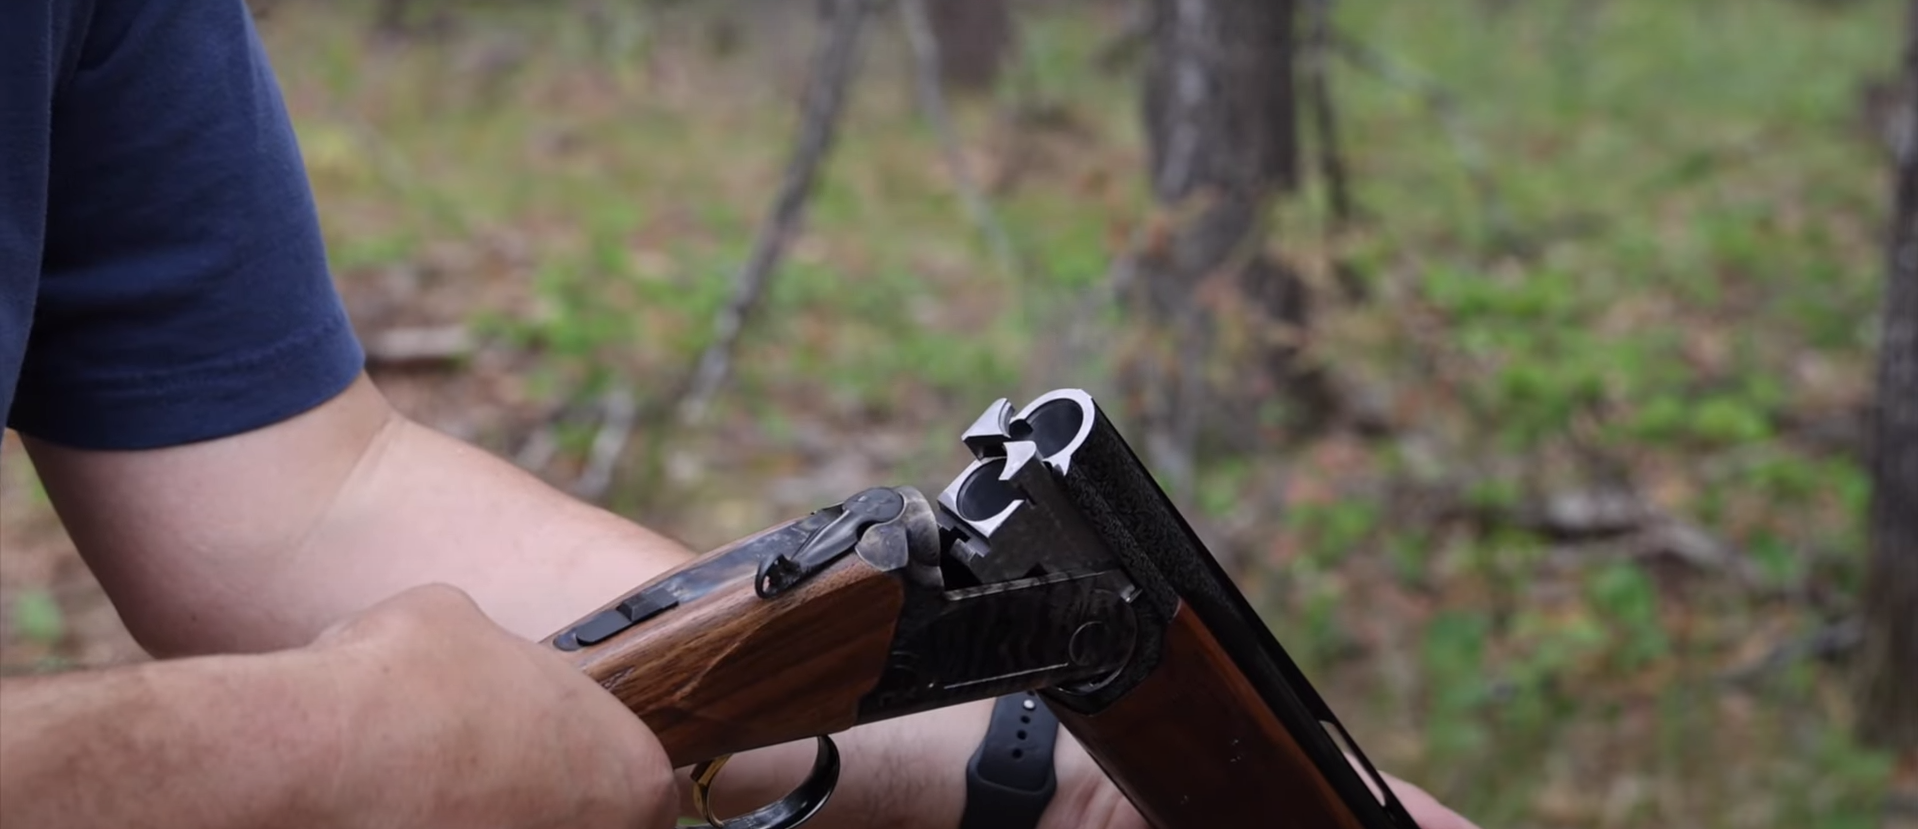 Nemo Arms NX Shotgun First Look – One Sweet Over Under